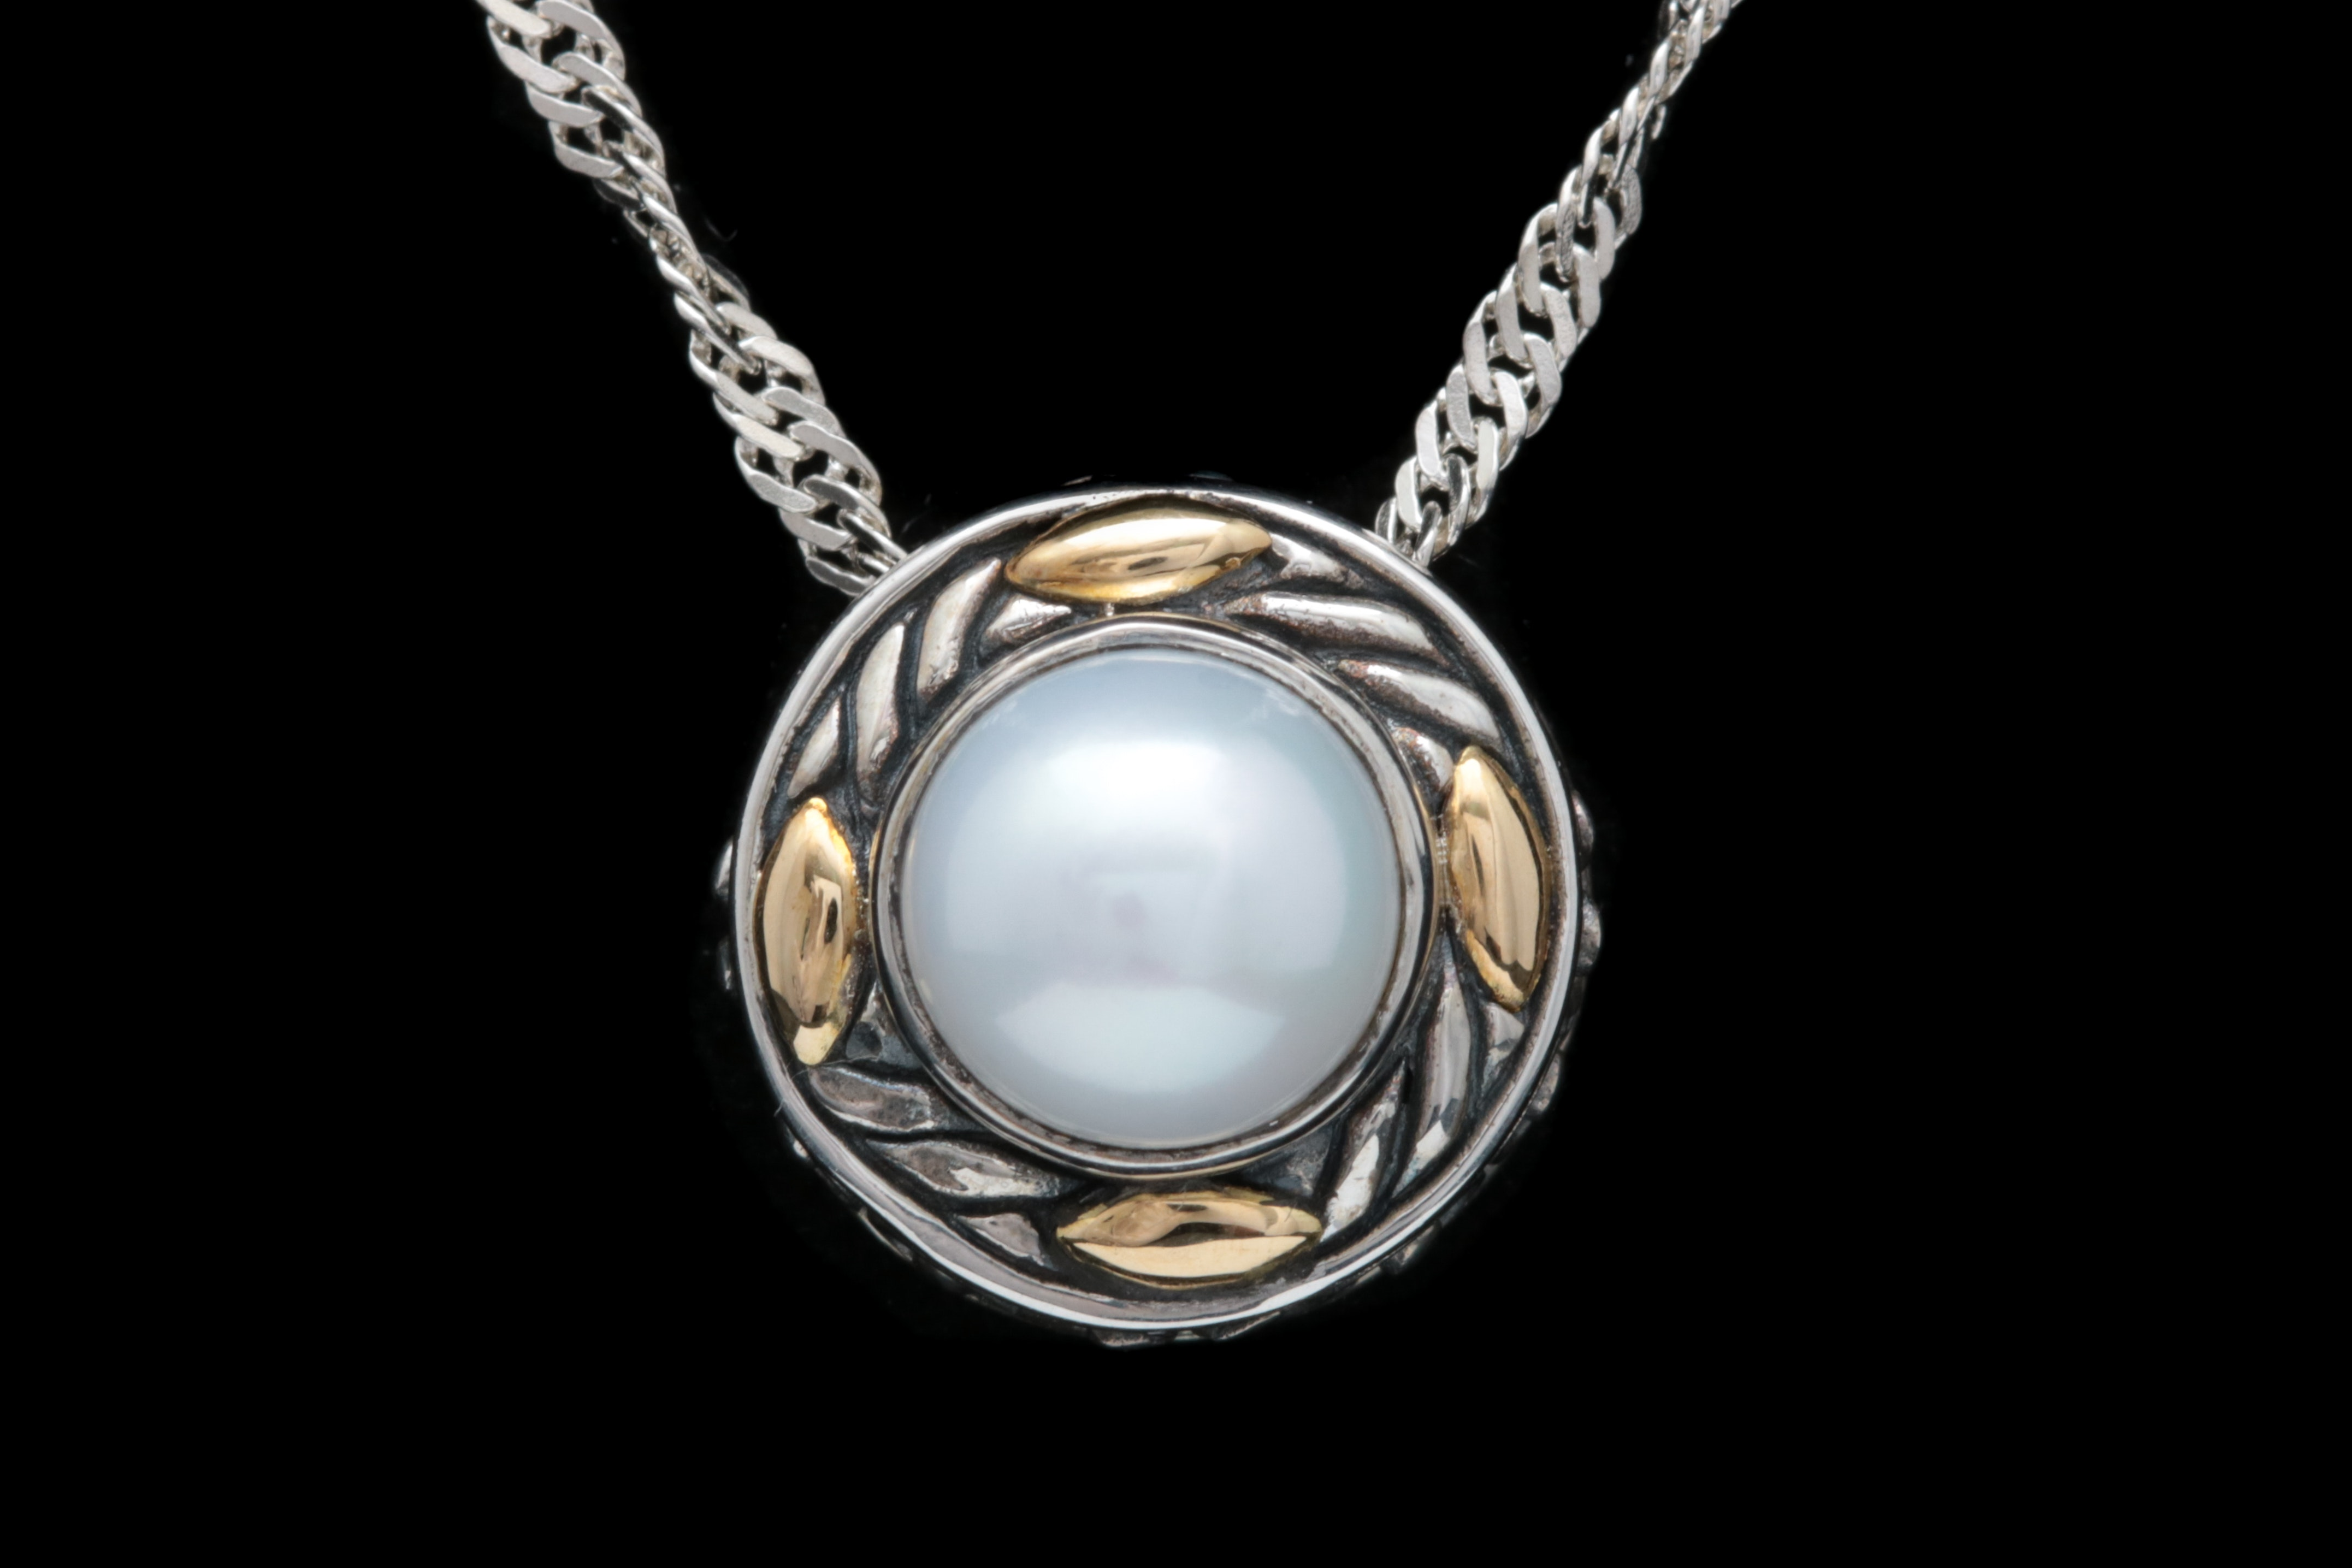 Robert Manse Sterling Silver, 18K Yellow Gold and Pearl Pendant with Chain